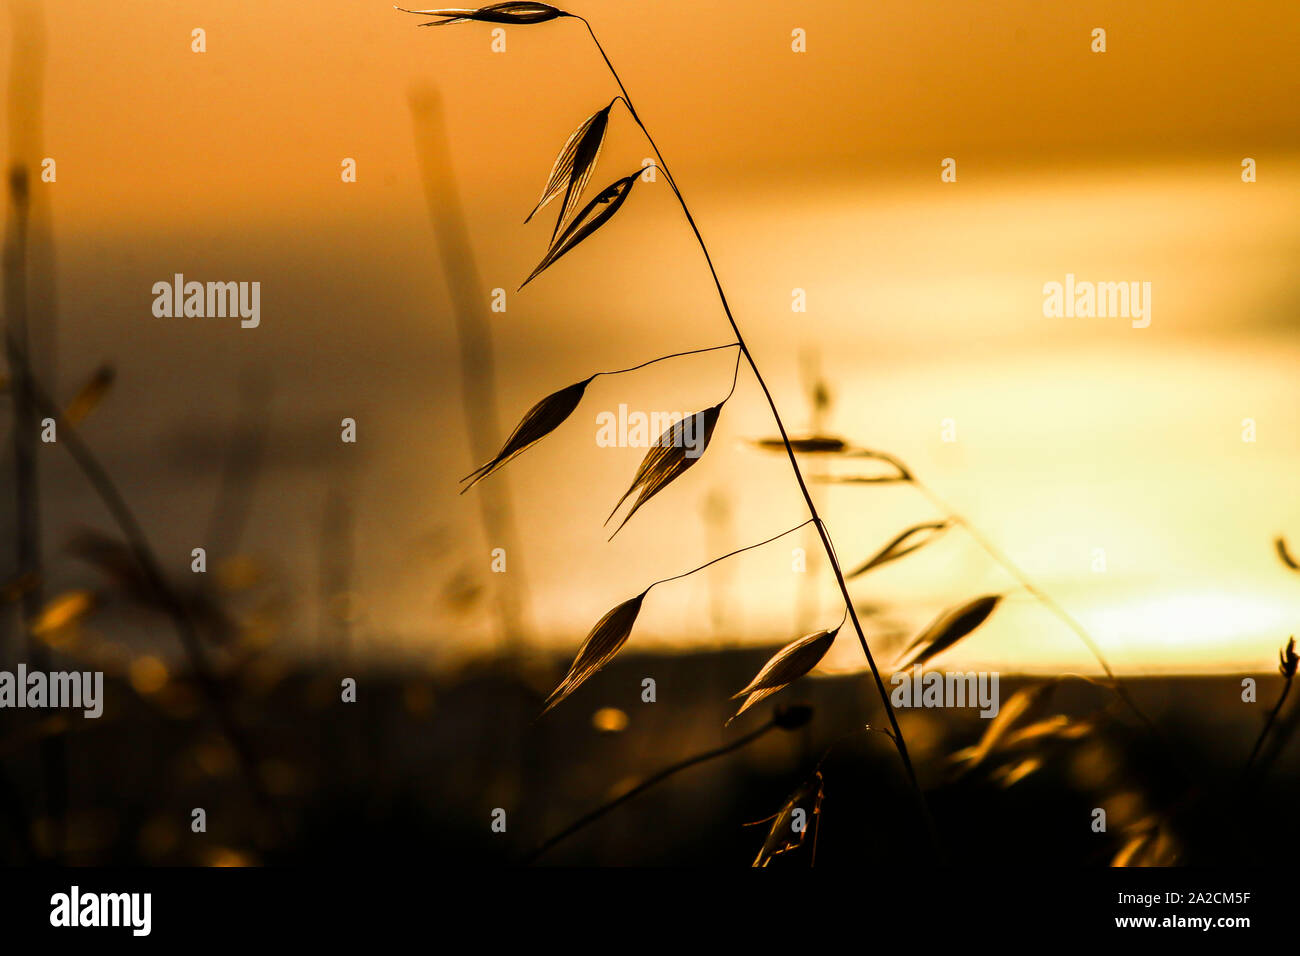 Beautiful nature sunset landscape. Ears of golden wheat close up. Rural scene under sunlight. Summer background of ripening ears of agriculture landsc Stock Photo